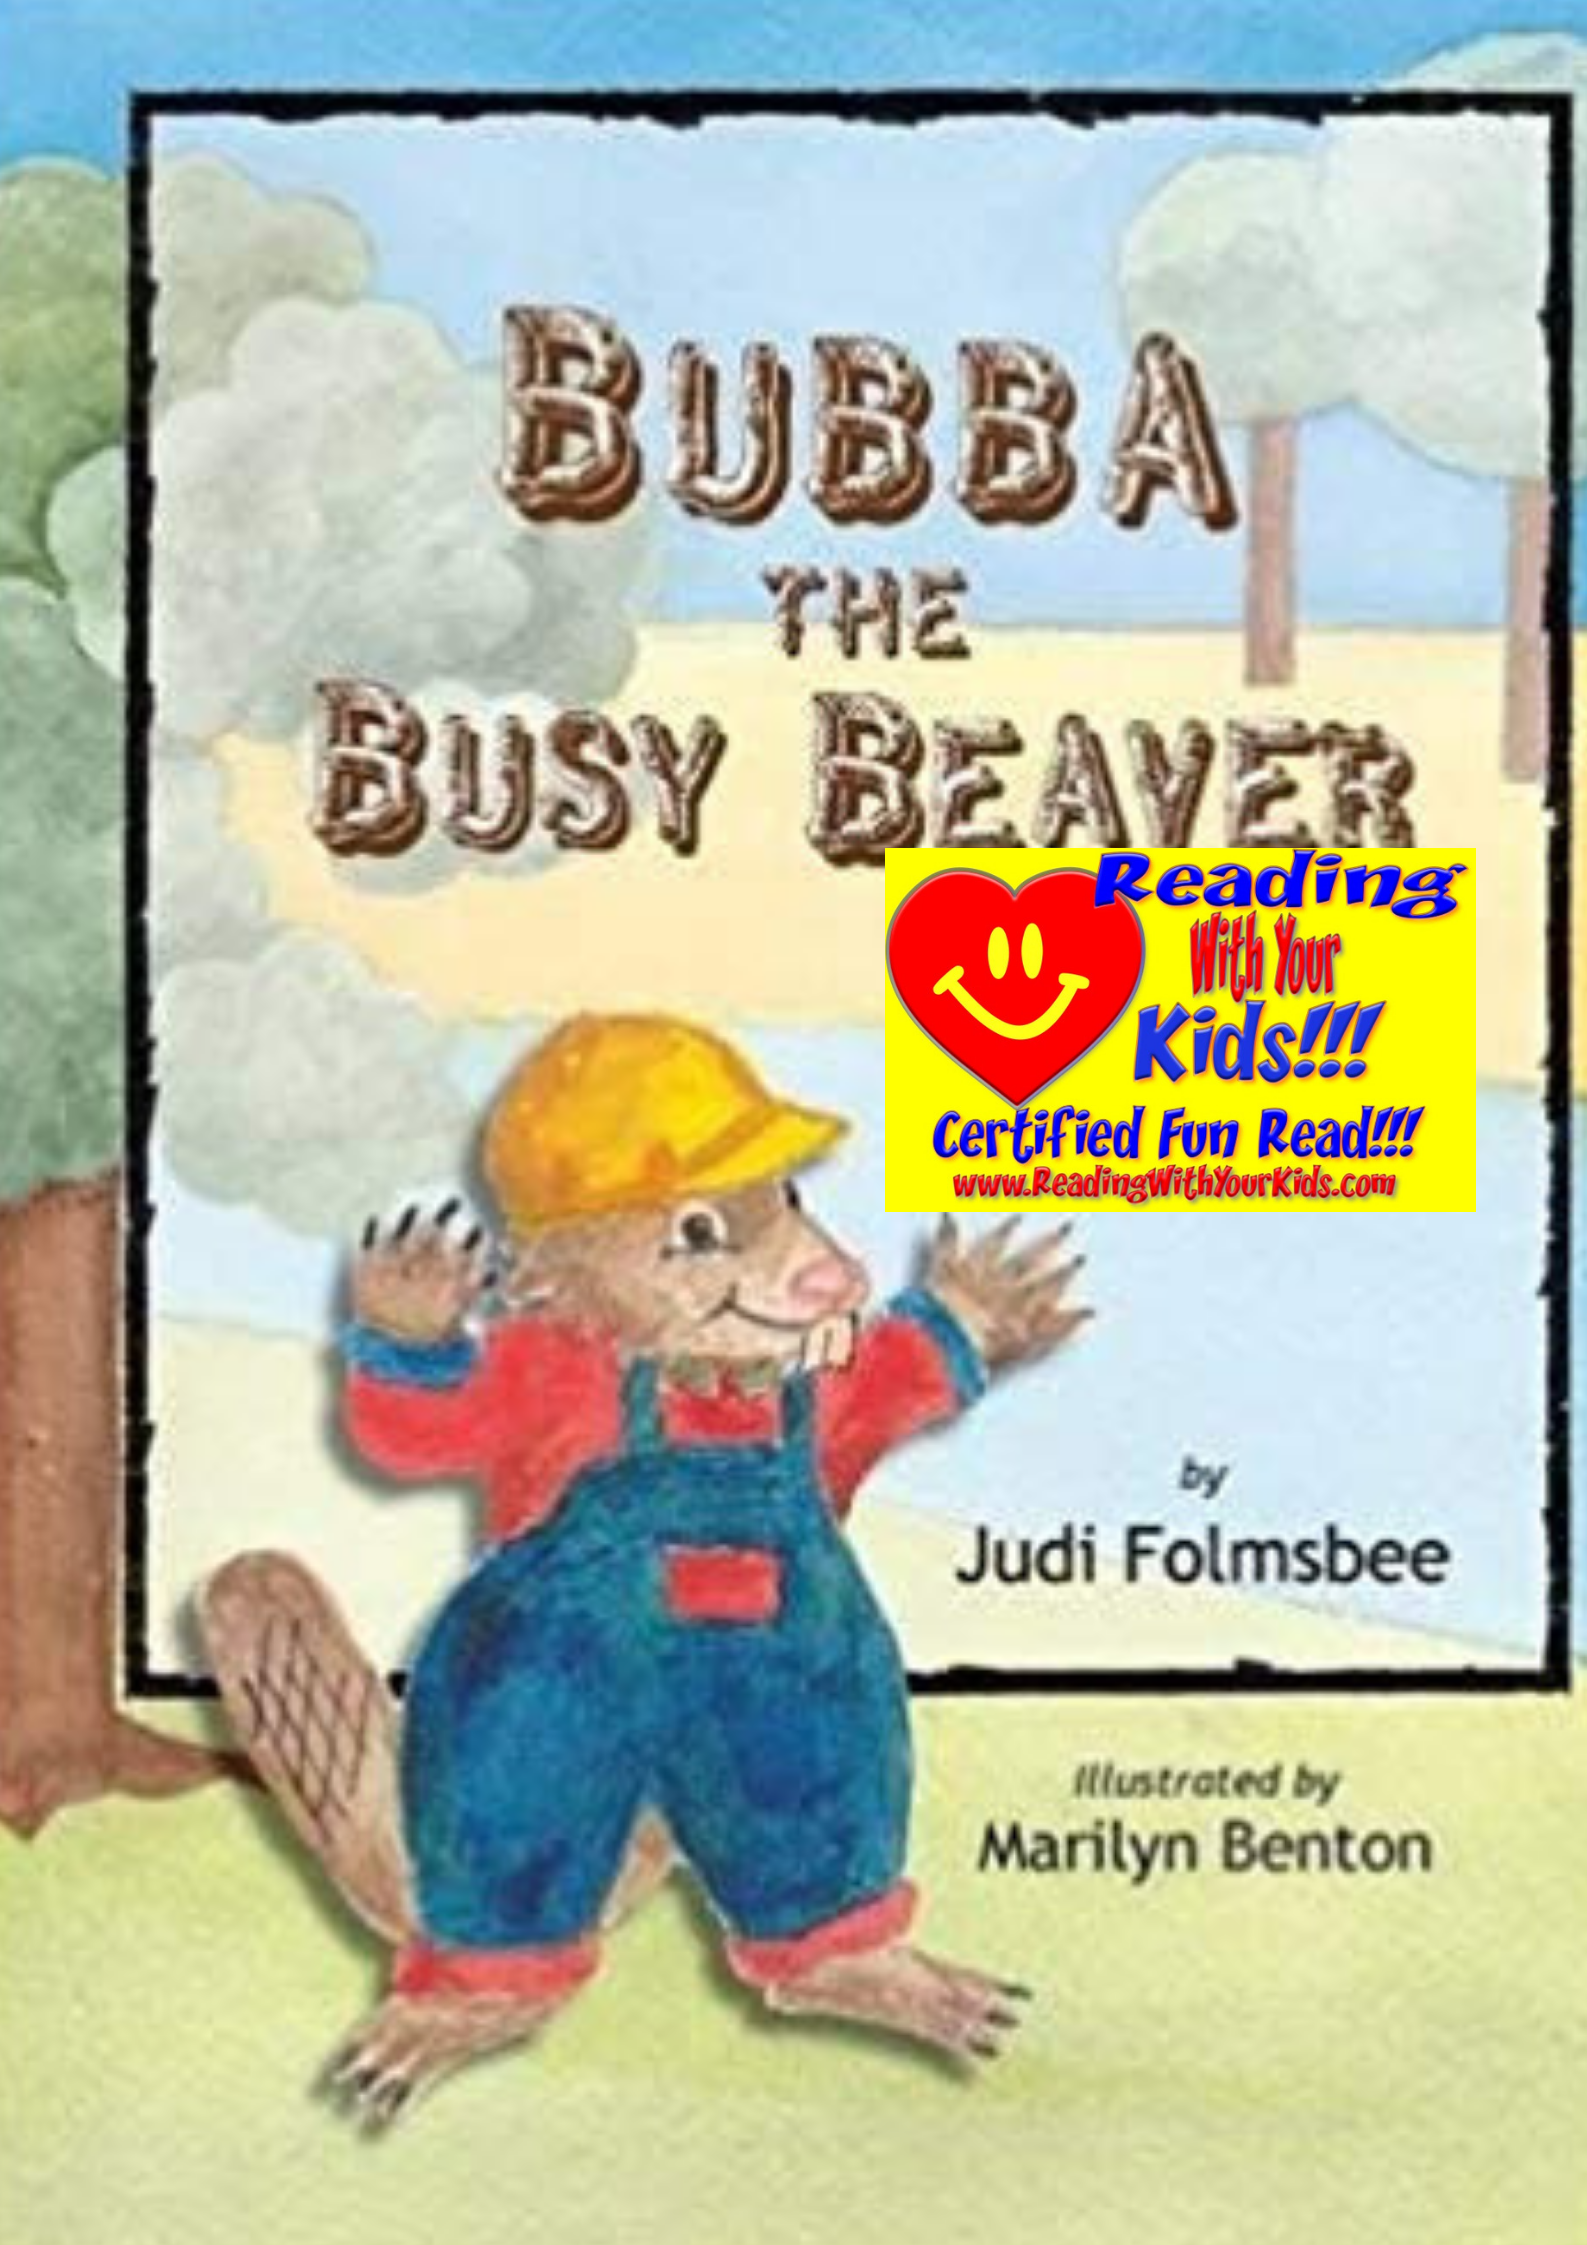 Bubba the Busy Beaver: #RWYK Certified Fun Read